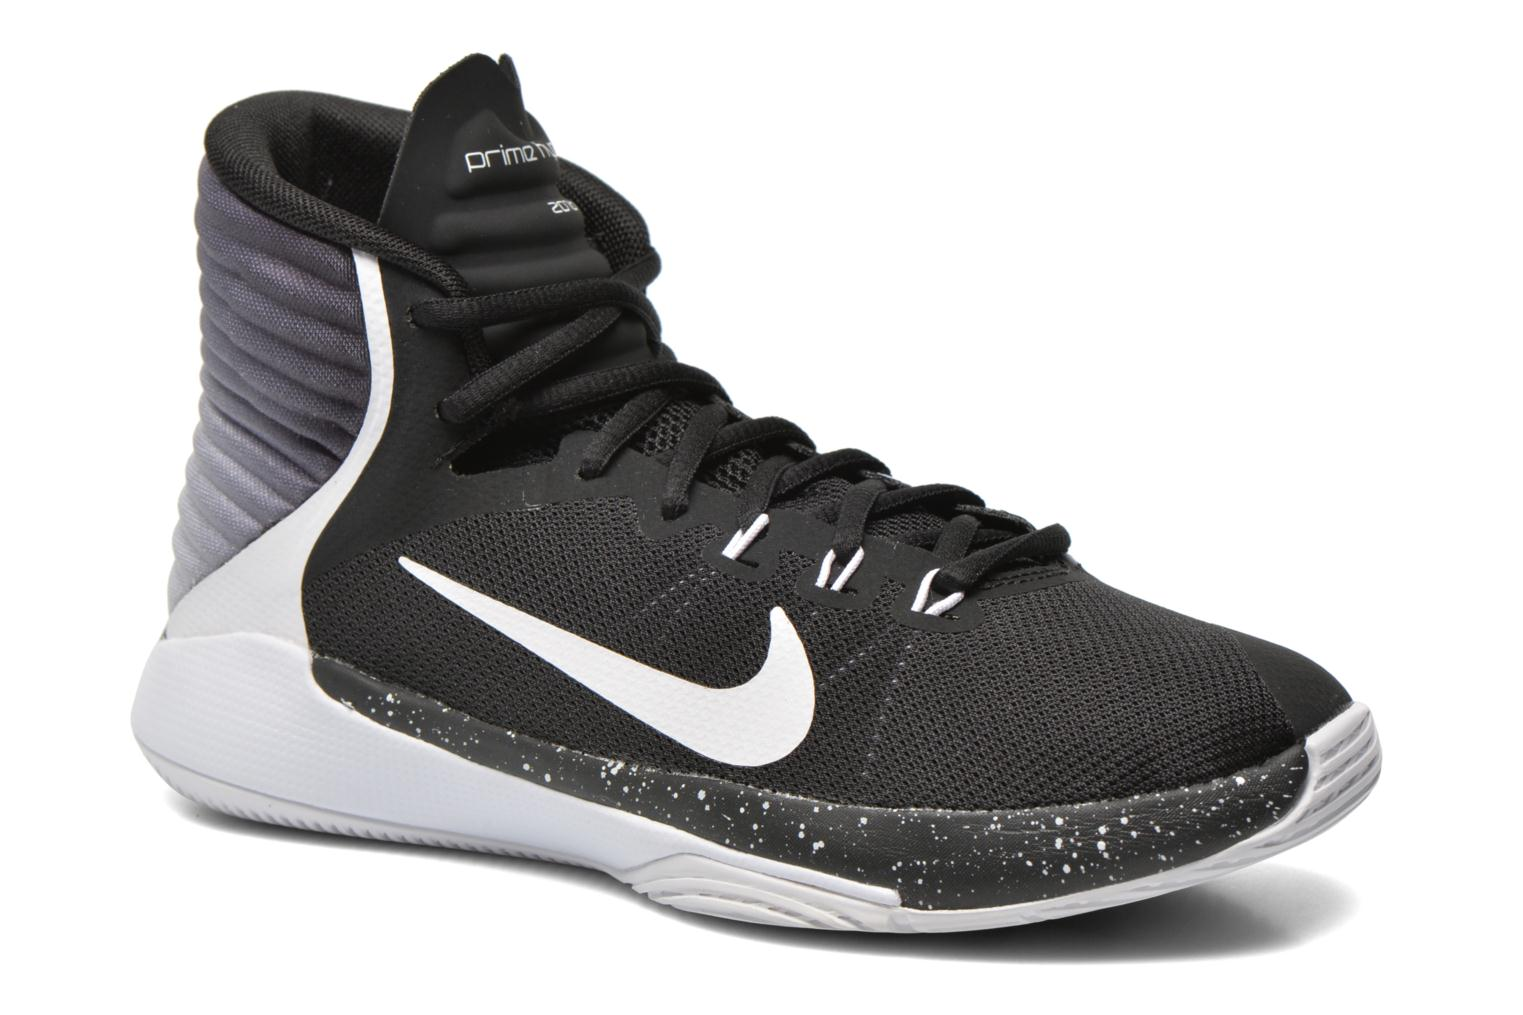 Nike Prime Hype Df 2016 (Gs) Black White